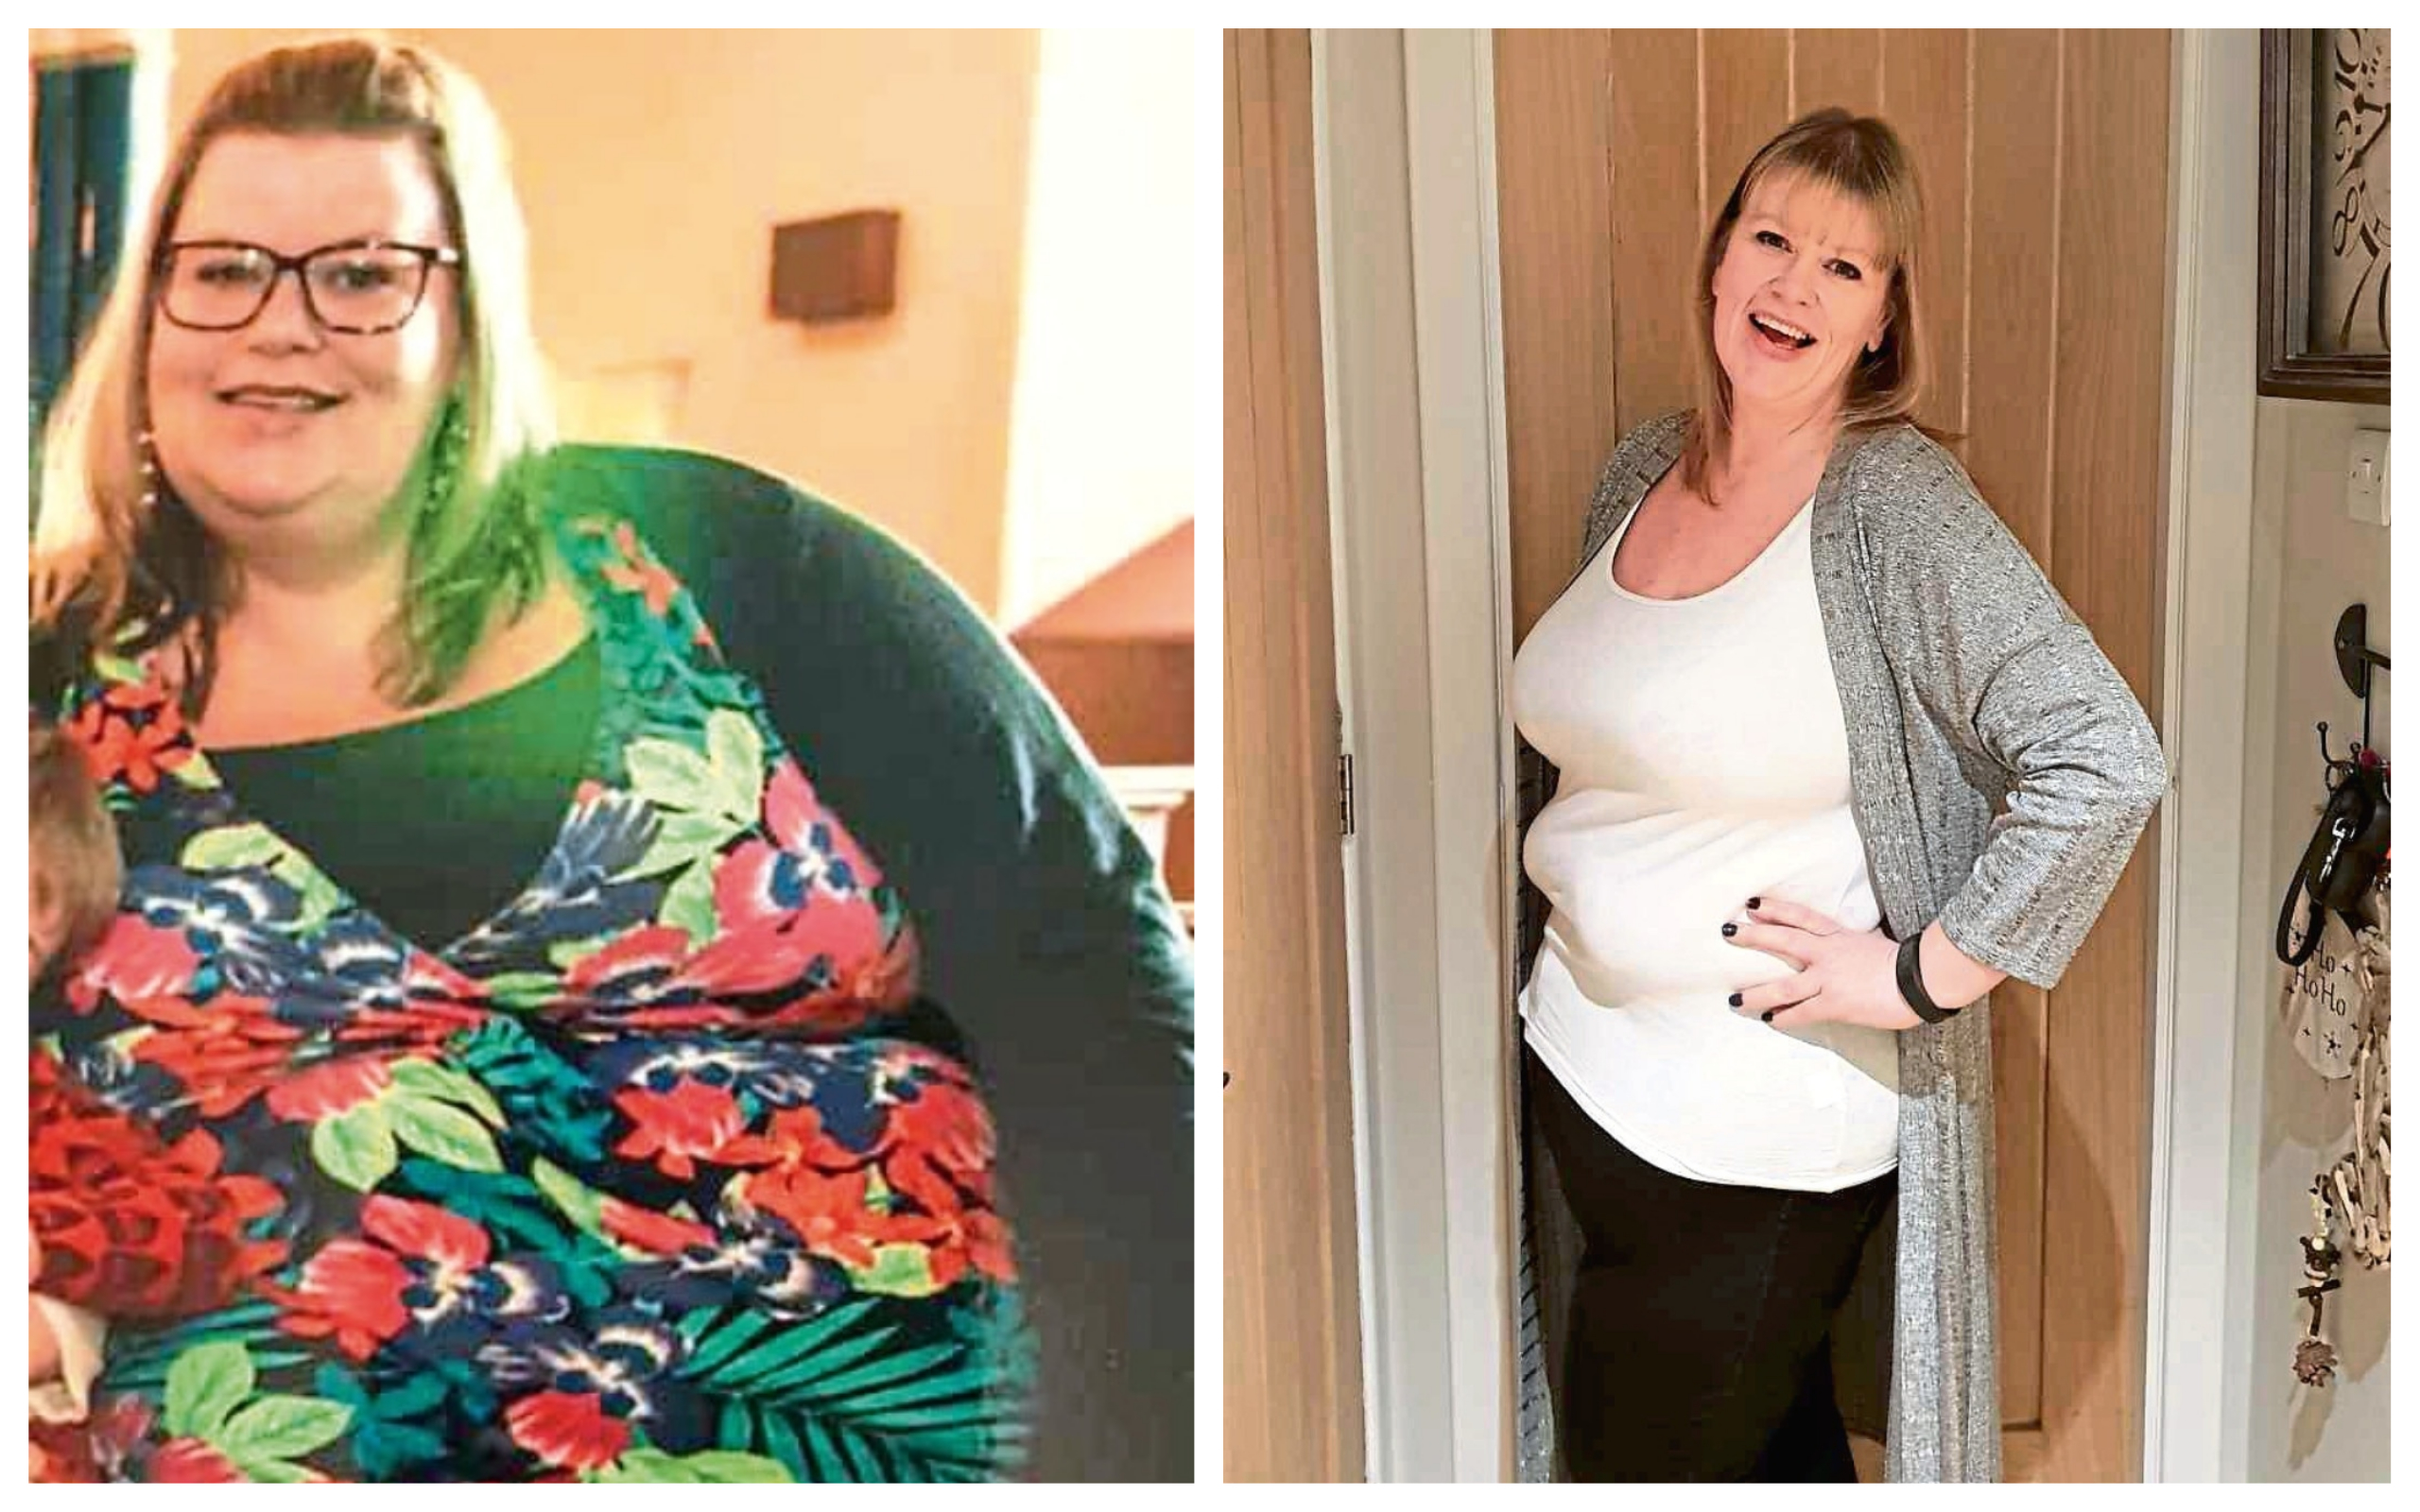 Fiona lost 125lbs